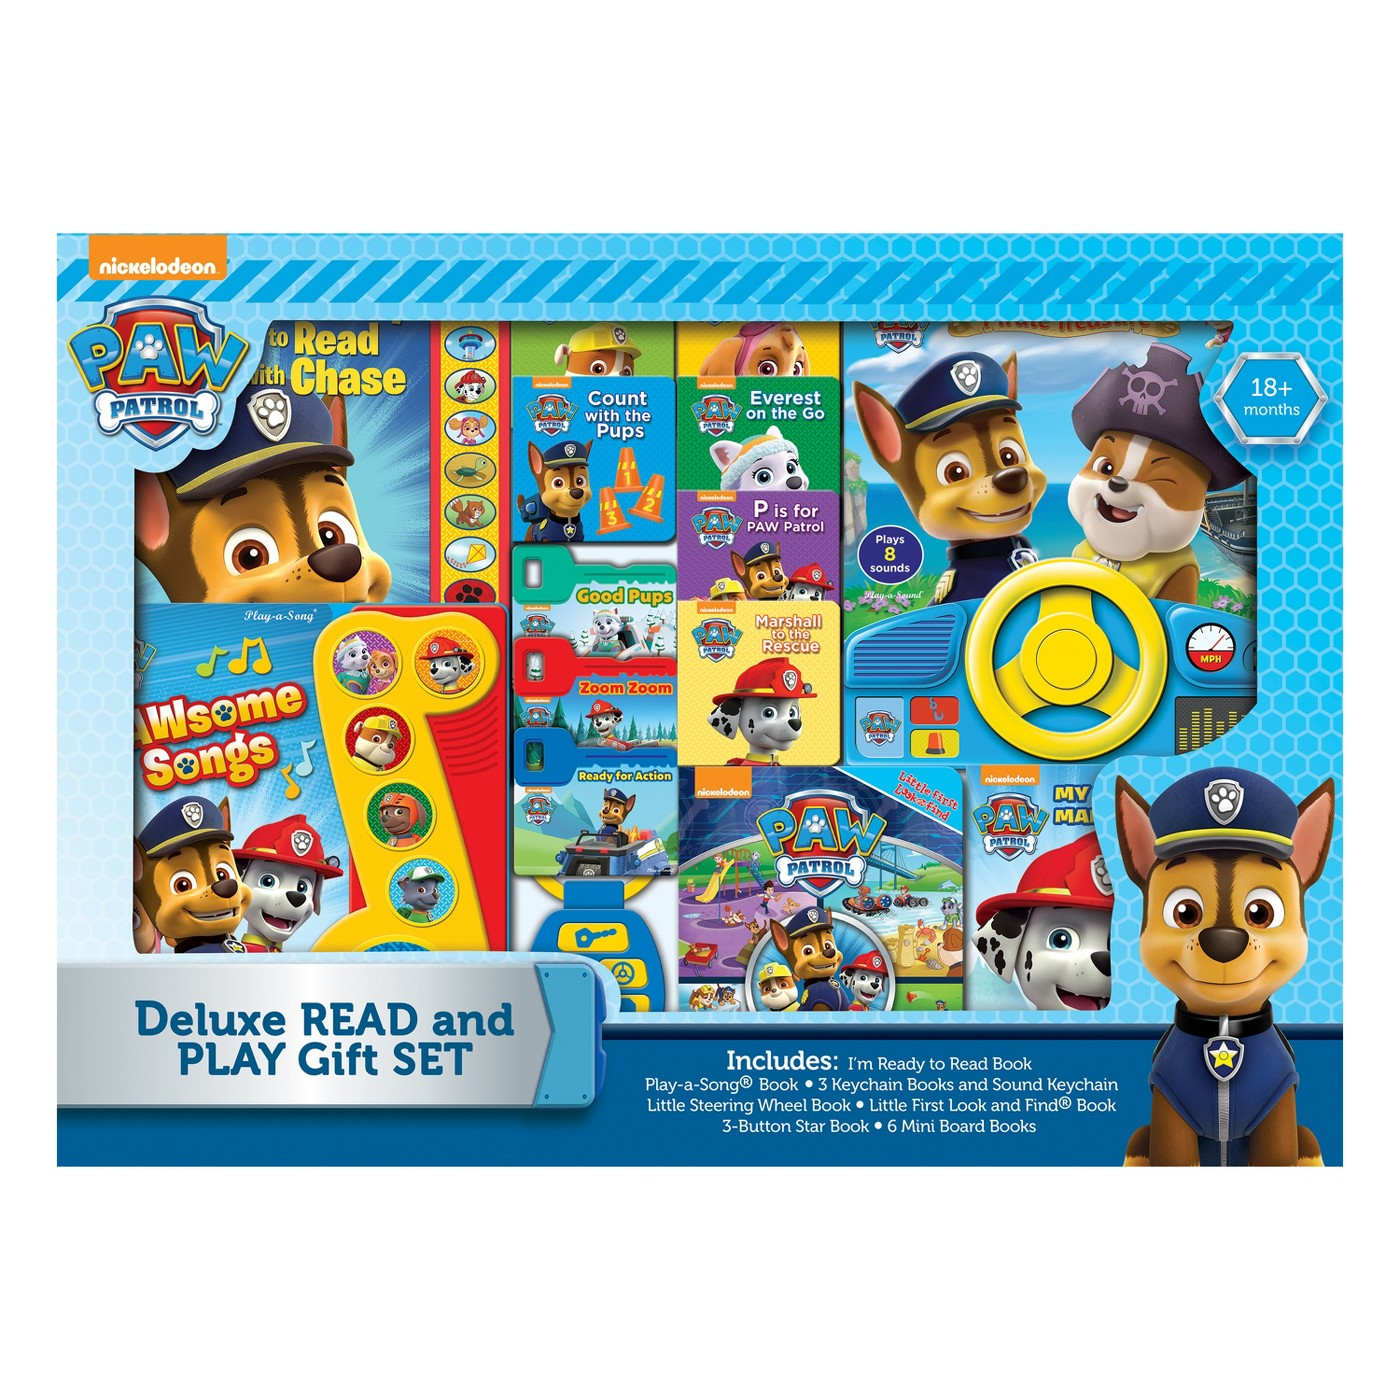 Nickelodeon PAW Patrol Deluxe Read and Play Gift Set - image 1 of 3